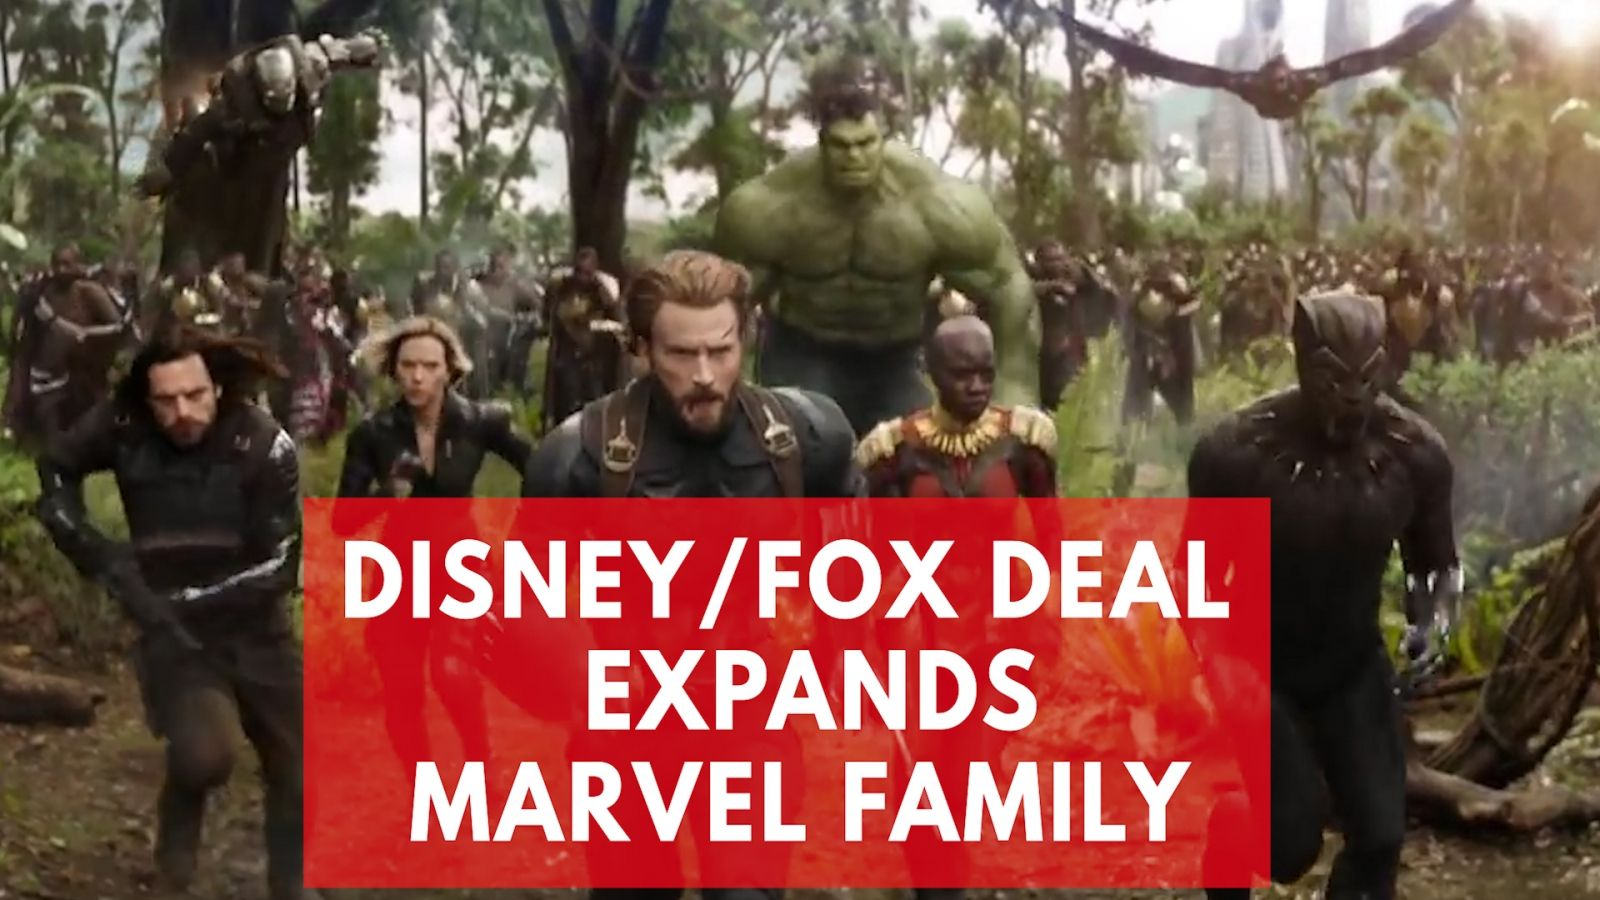 x-men-and-fantastic-four-joining-marvel-after-disney-fox-merger